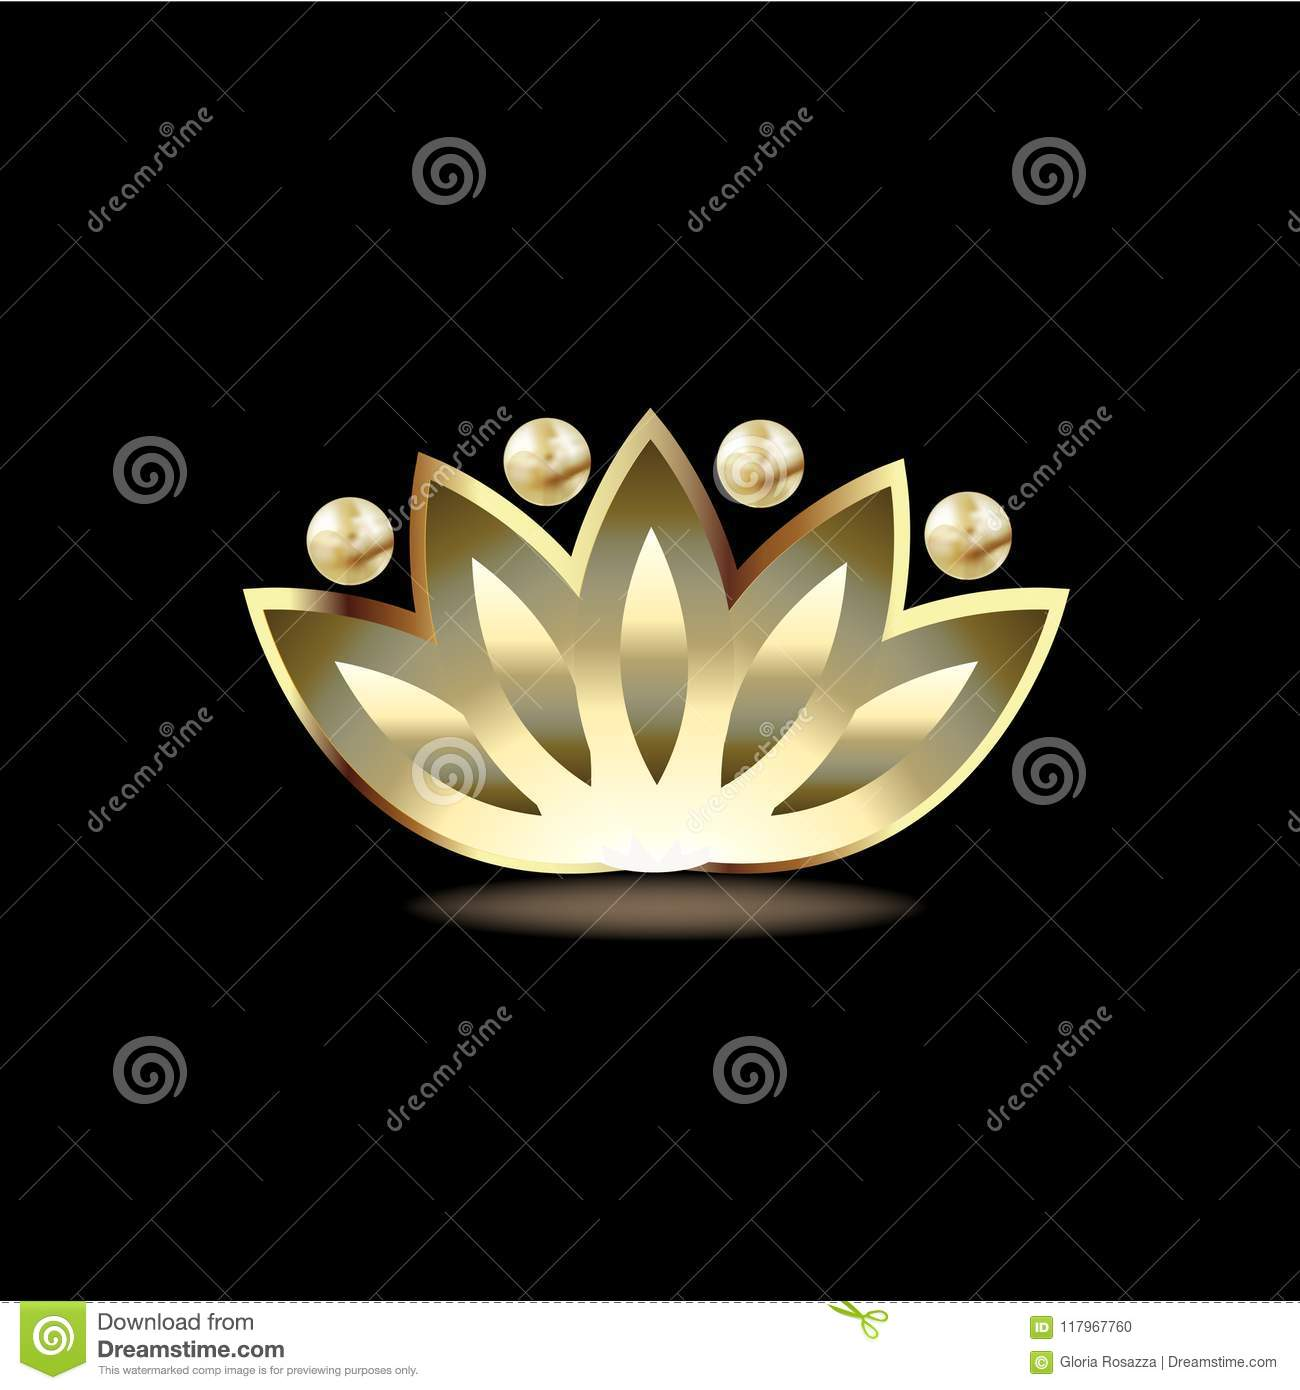 Logo gold lotus people flower spa symbol yoga vector image download logo gold lotus people flower spa symbol yoga vector image illustration graphic design stock vector izmirmasajfo